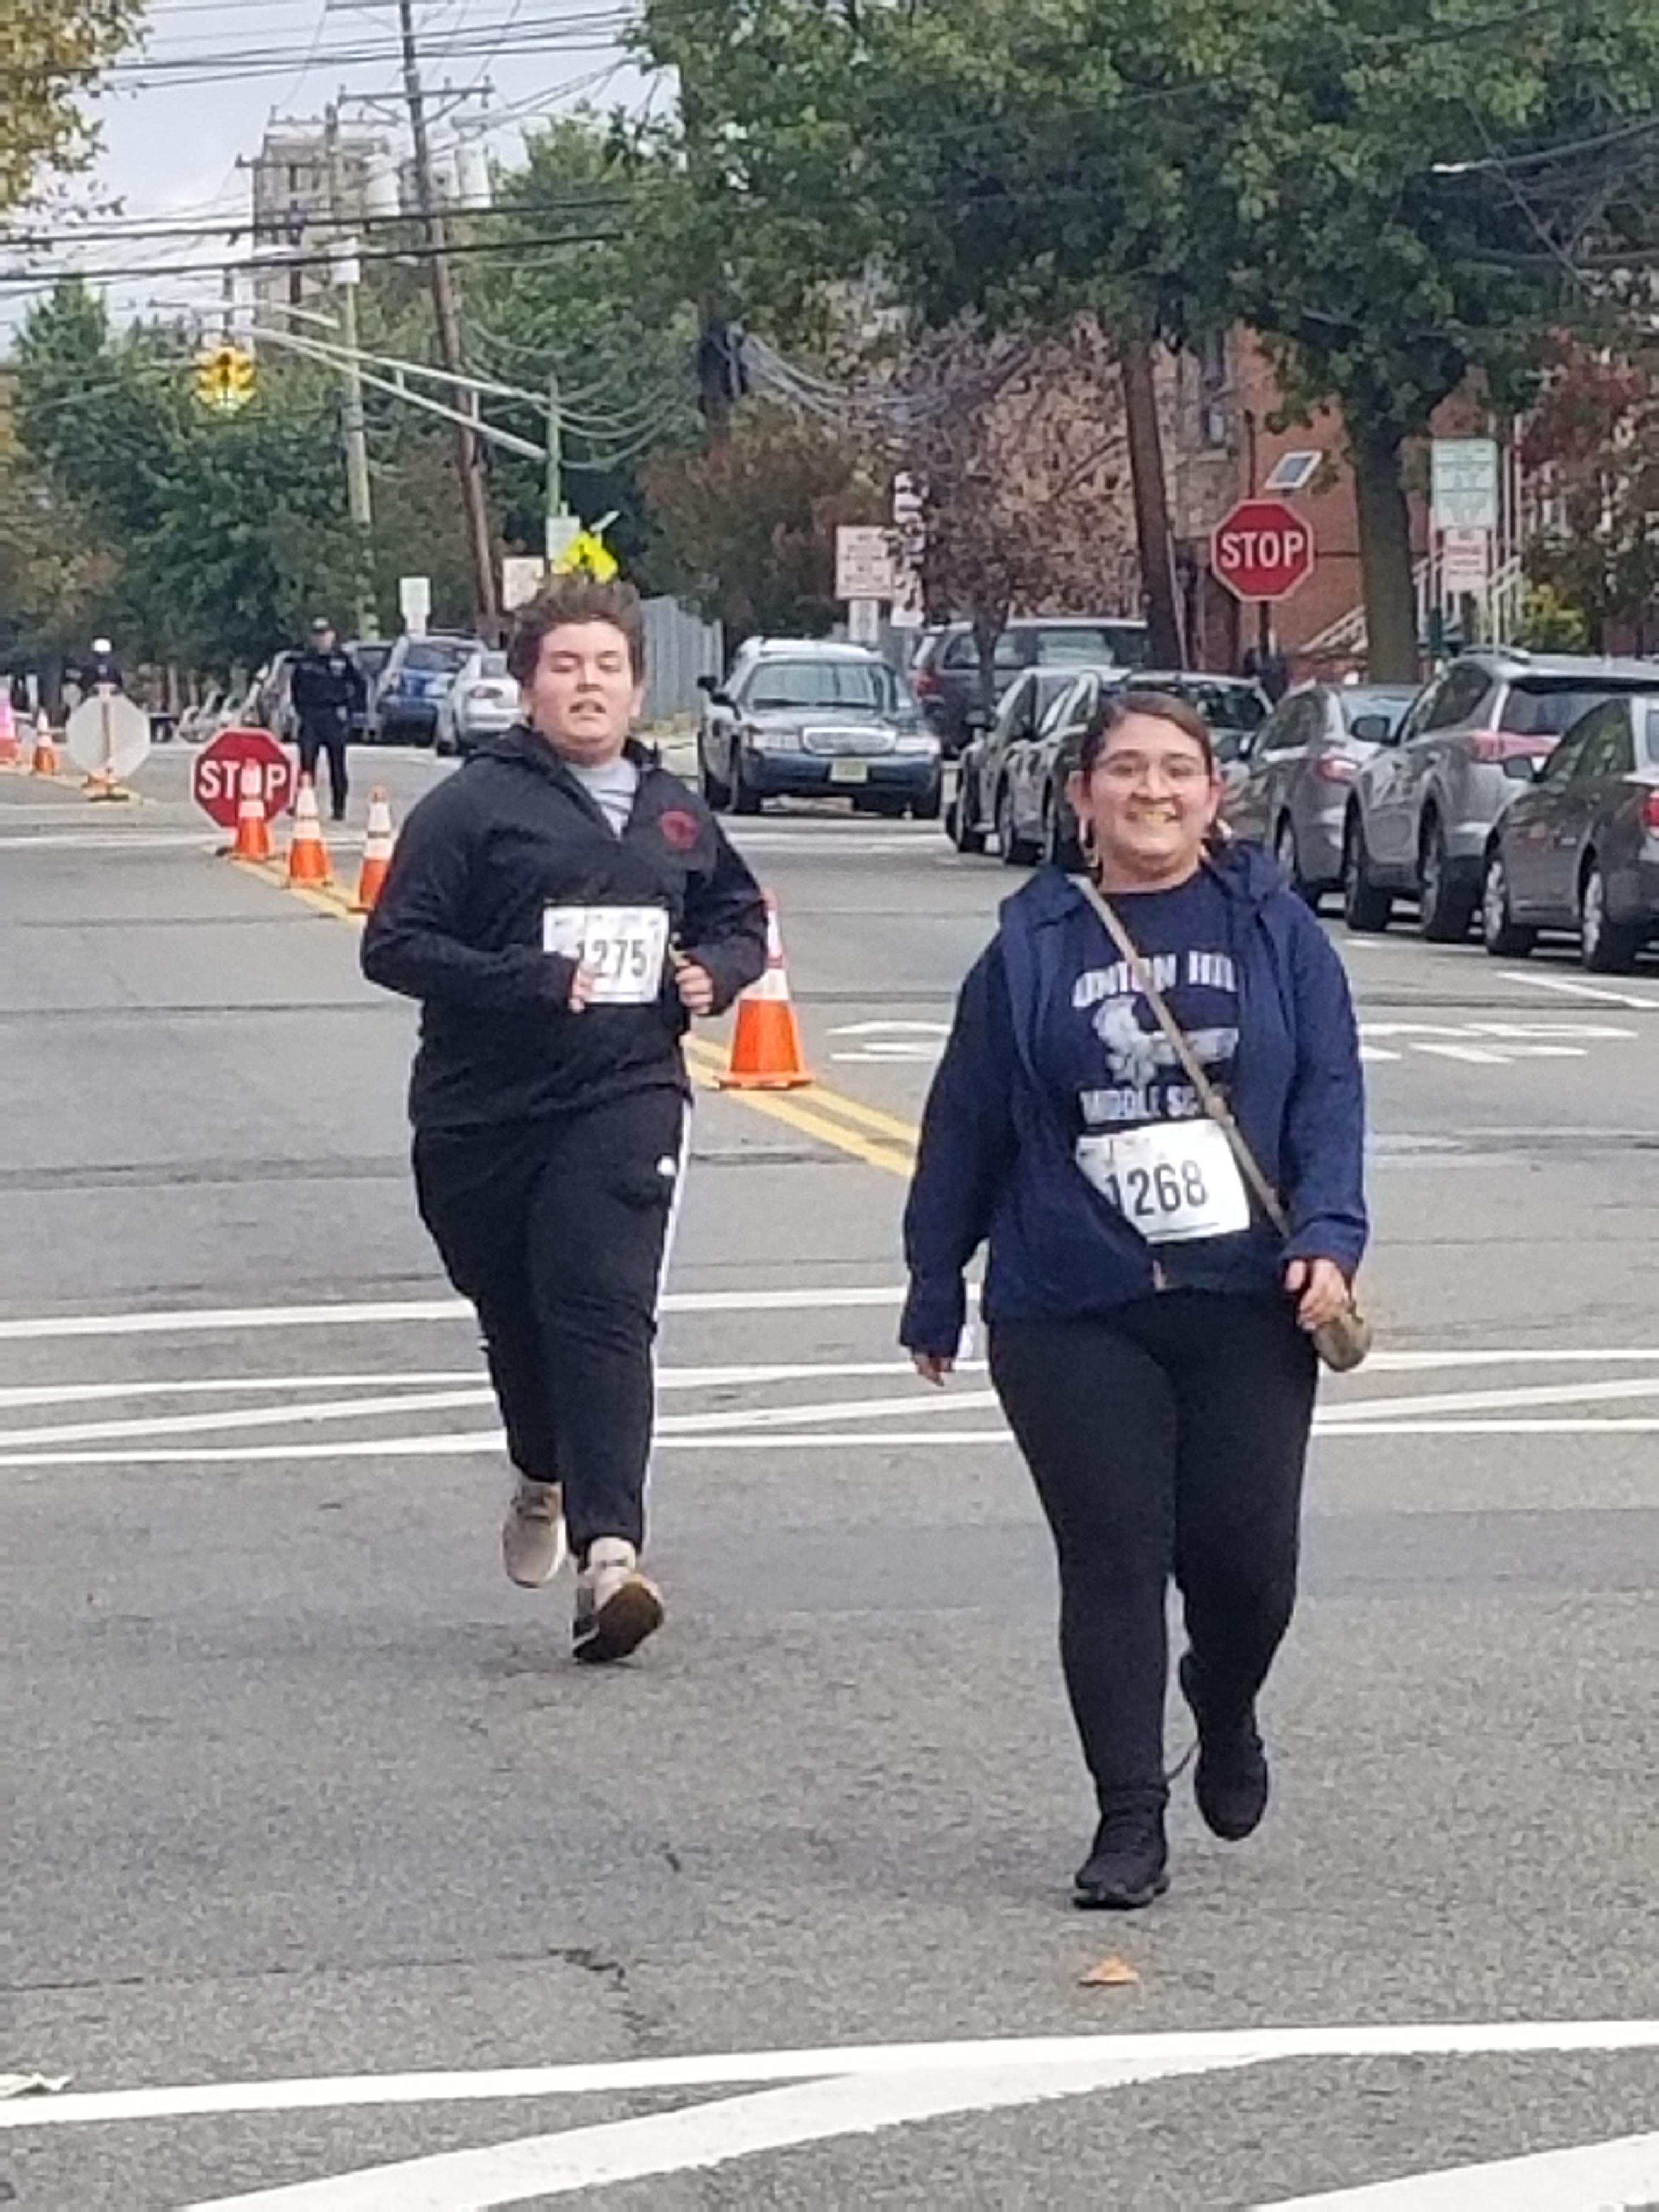 UHMS students one boy running and a girl walking